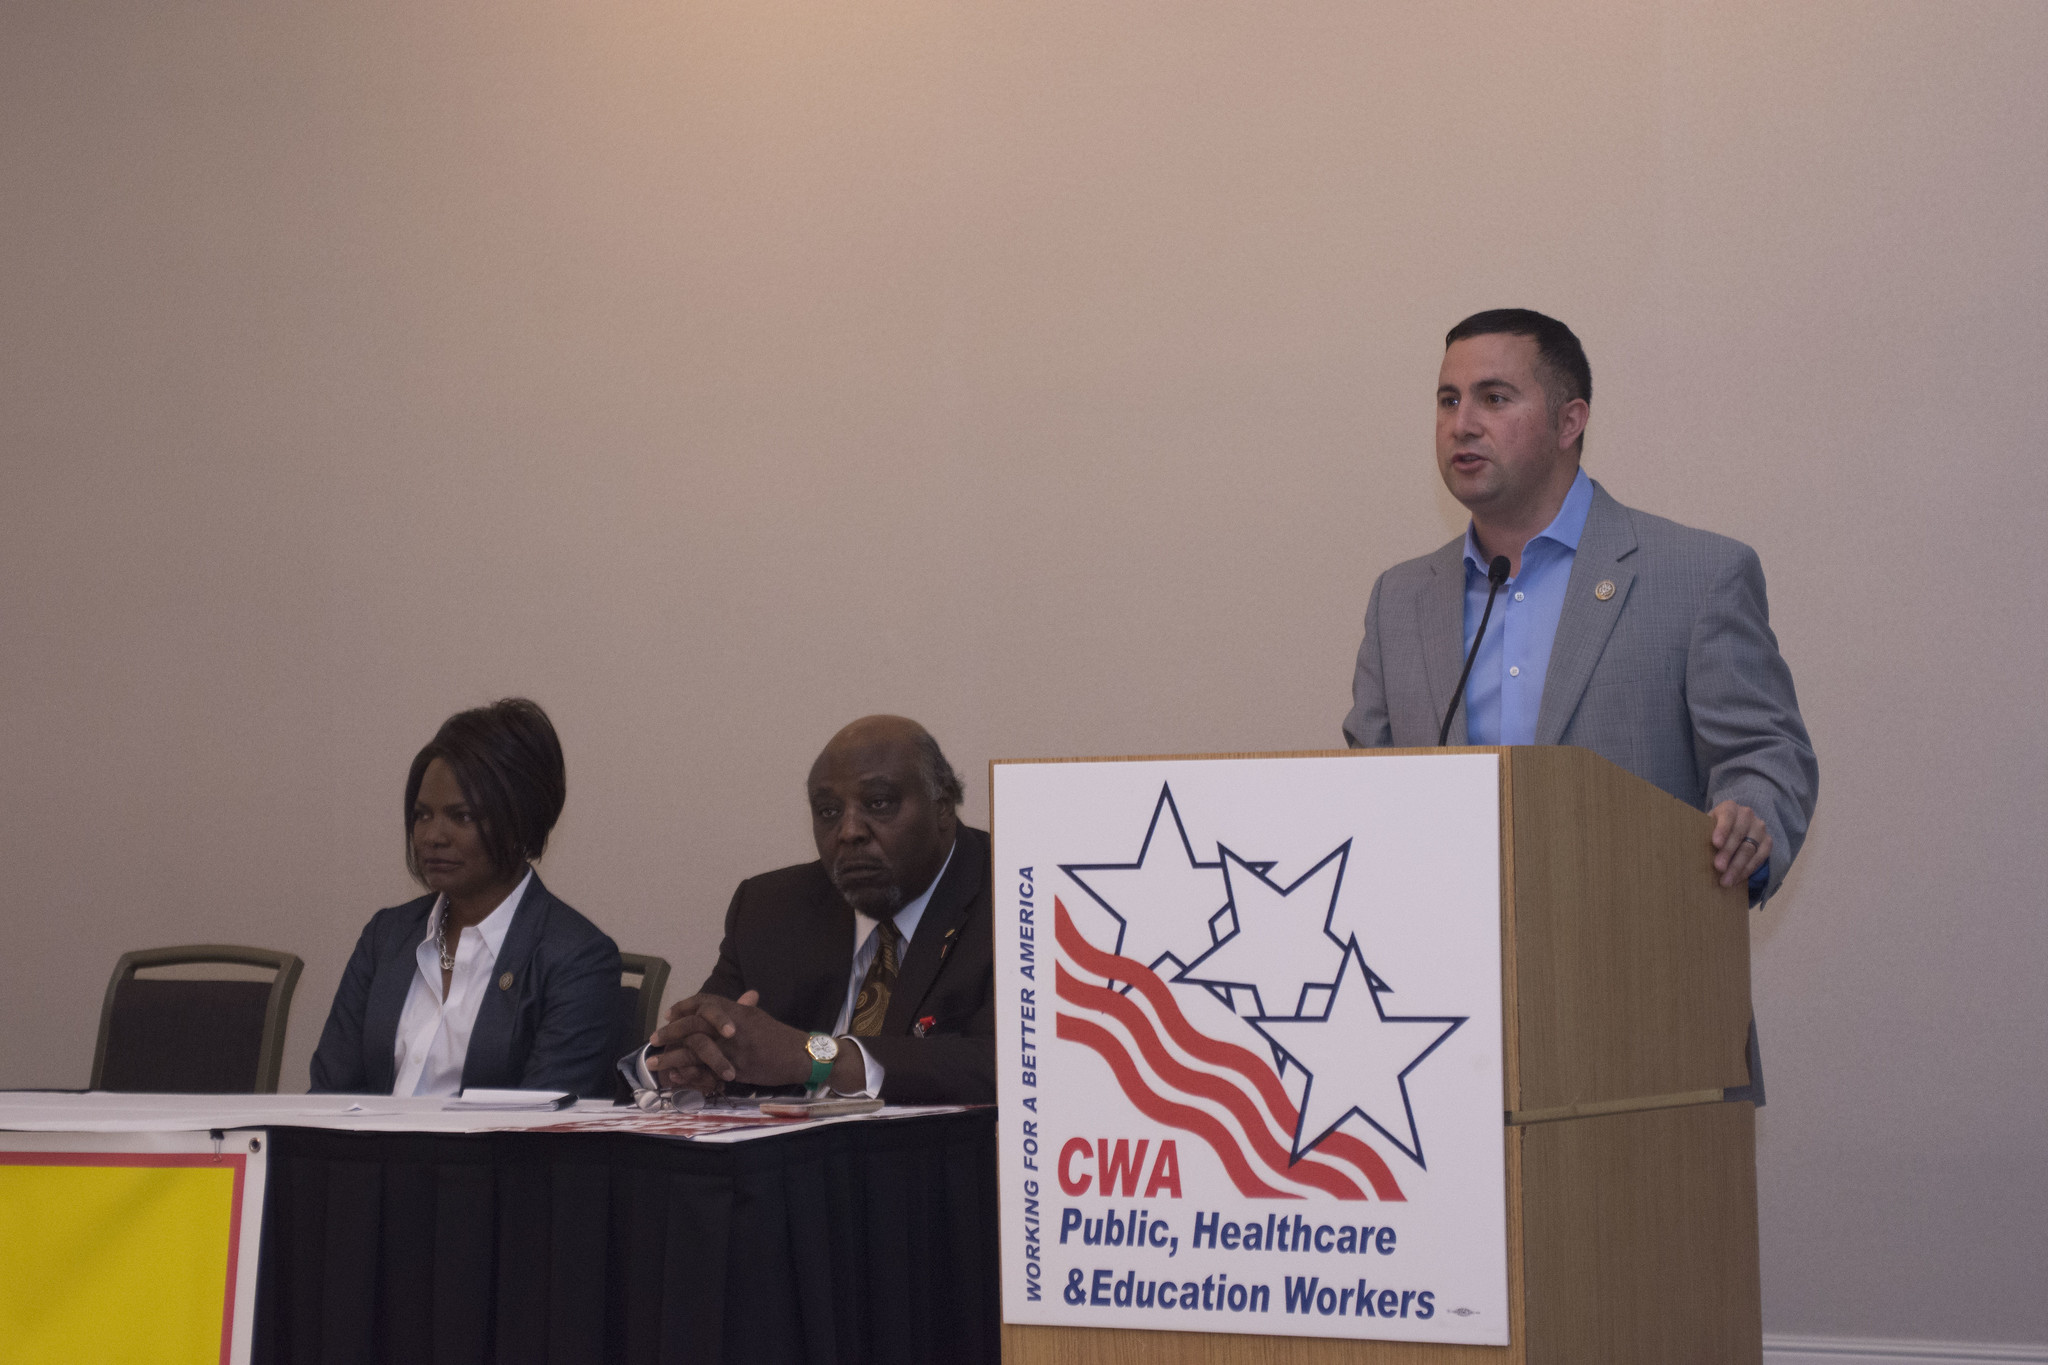 Rep. Darren Soto at the 2017 Public, Healthcare, and Education Workers Conference